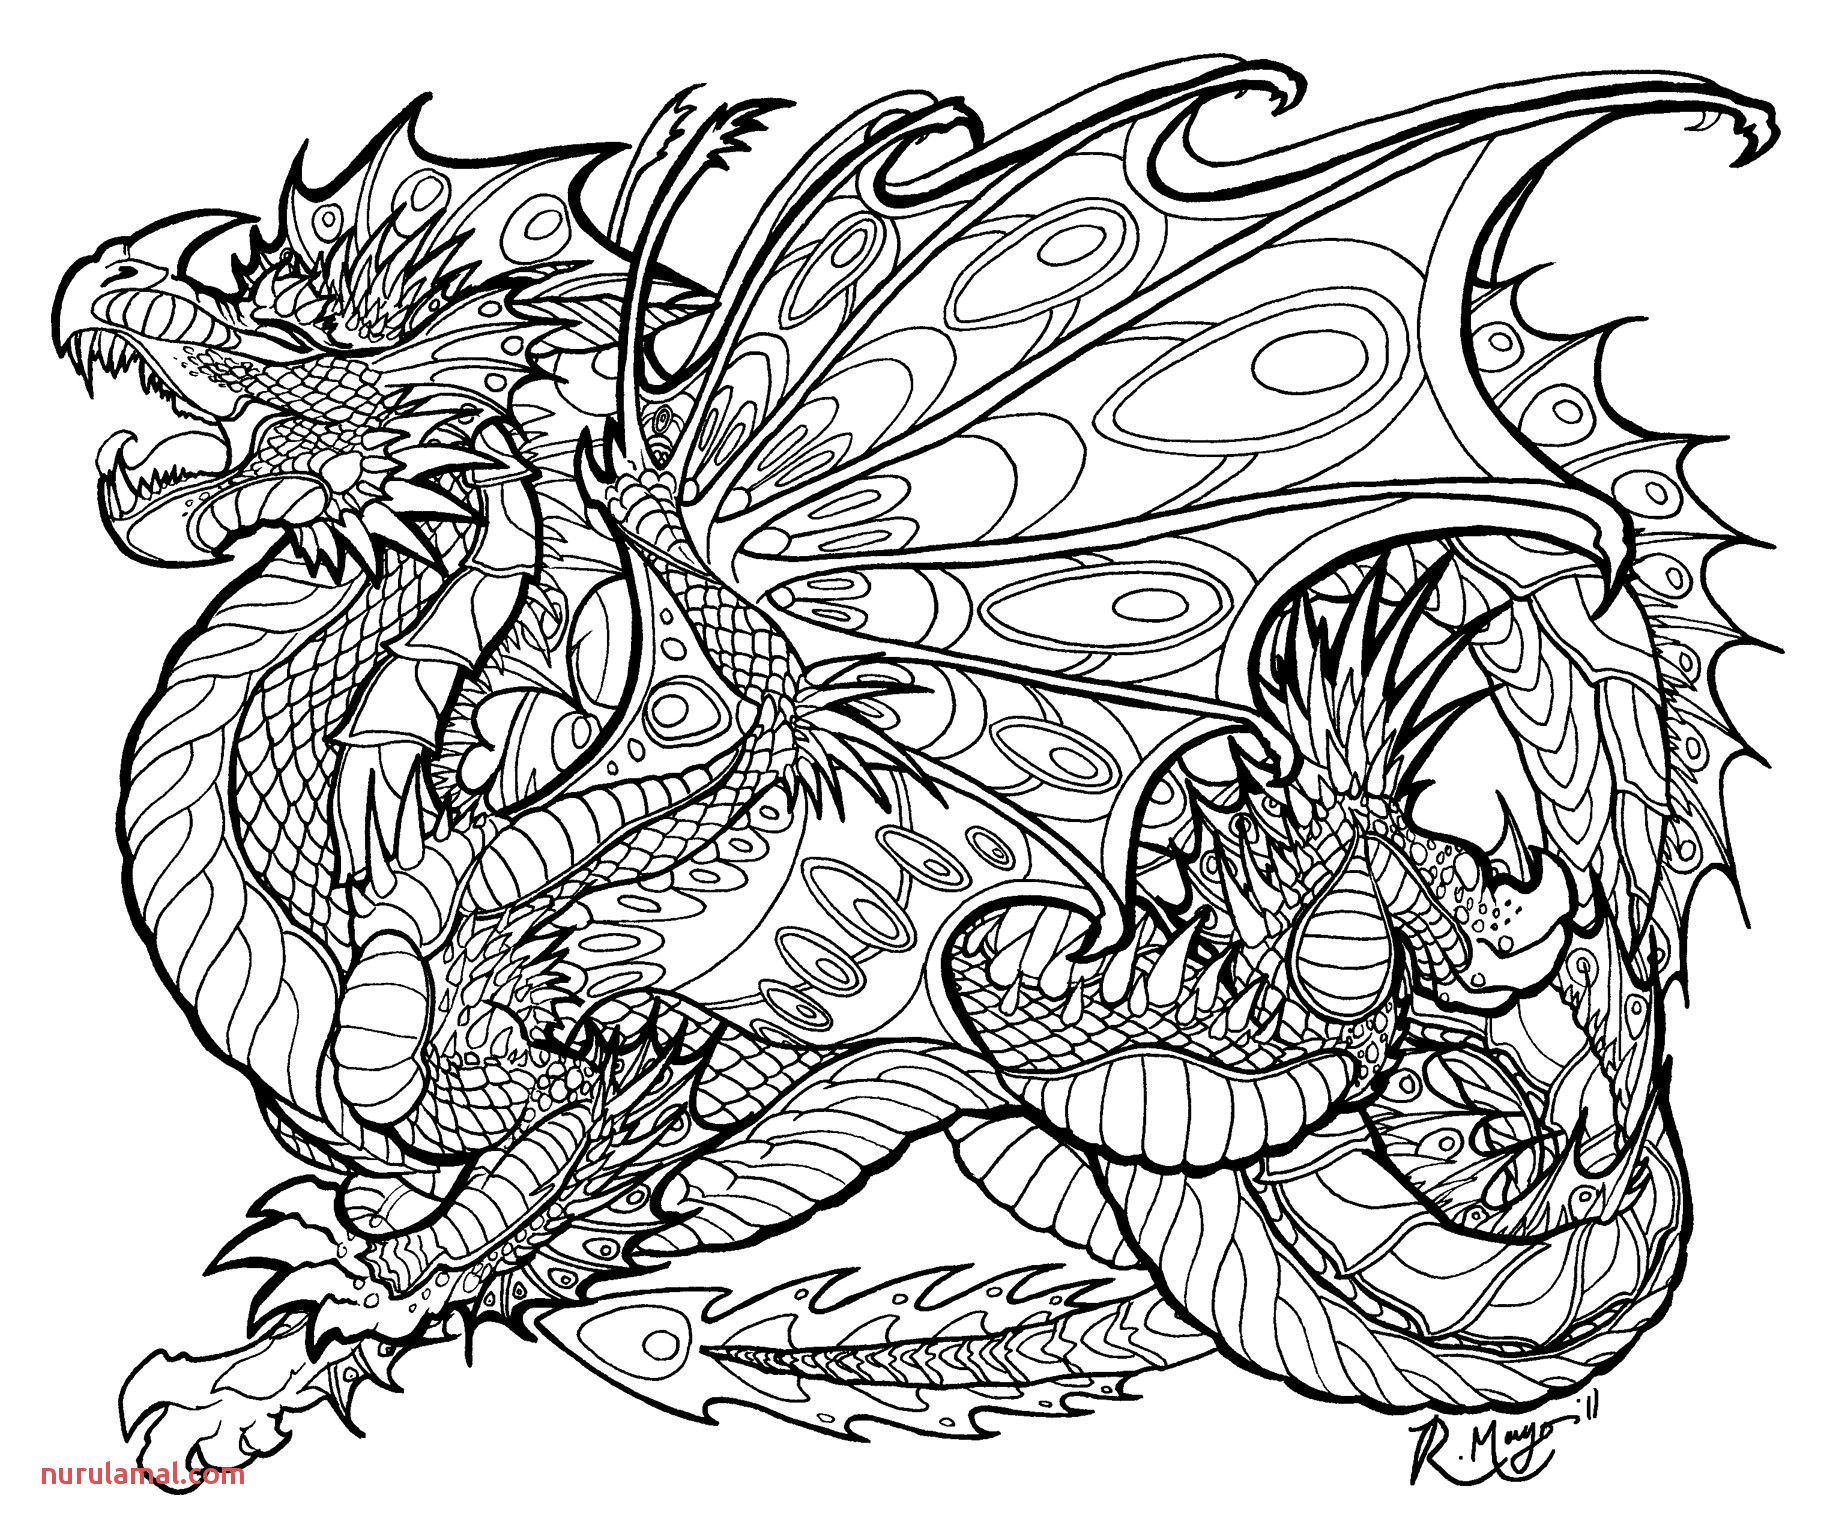 555fb54d09c29c61eb62f1f4b2210cb0 evil dragon coloring pages for adults to print coloring for kids 1846 1531